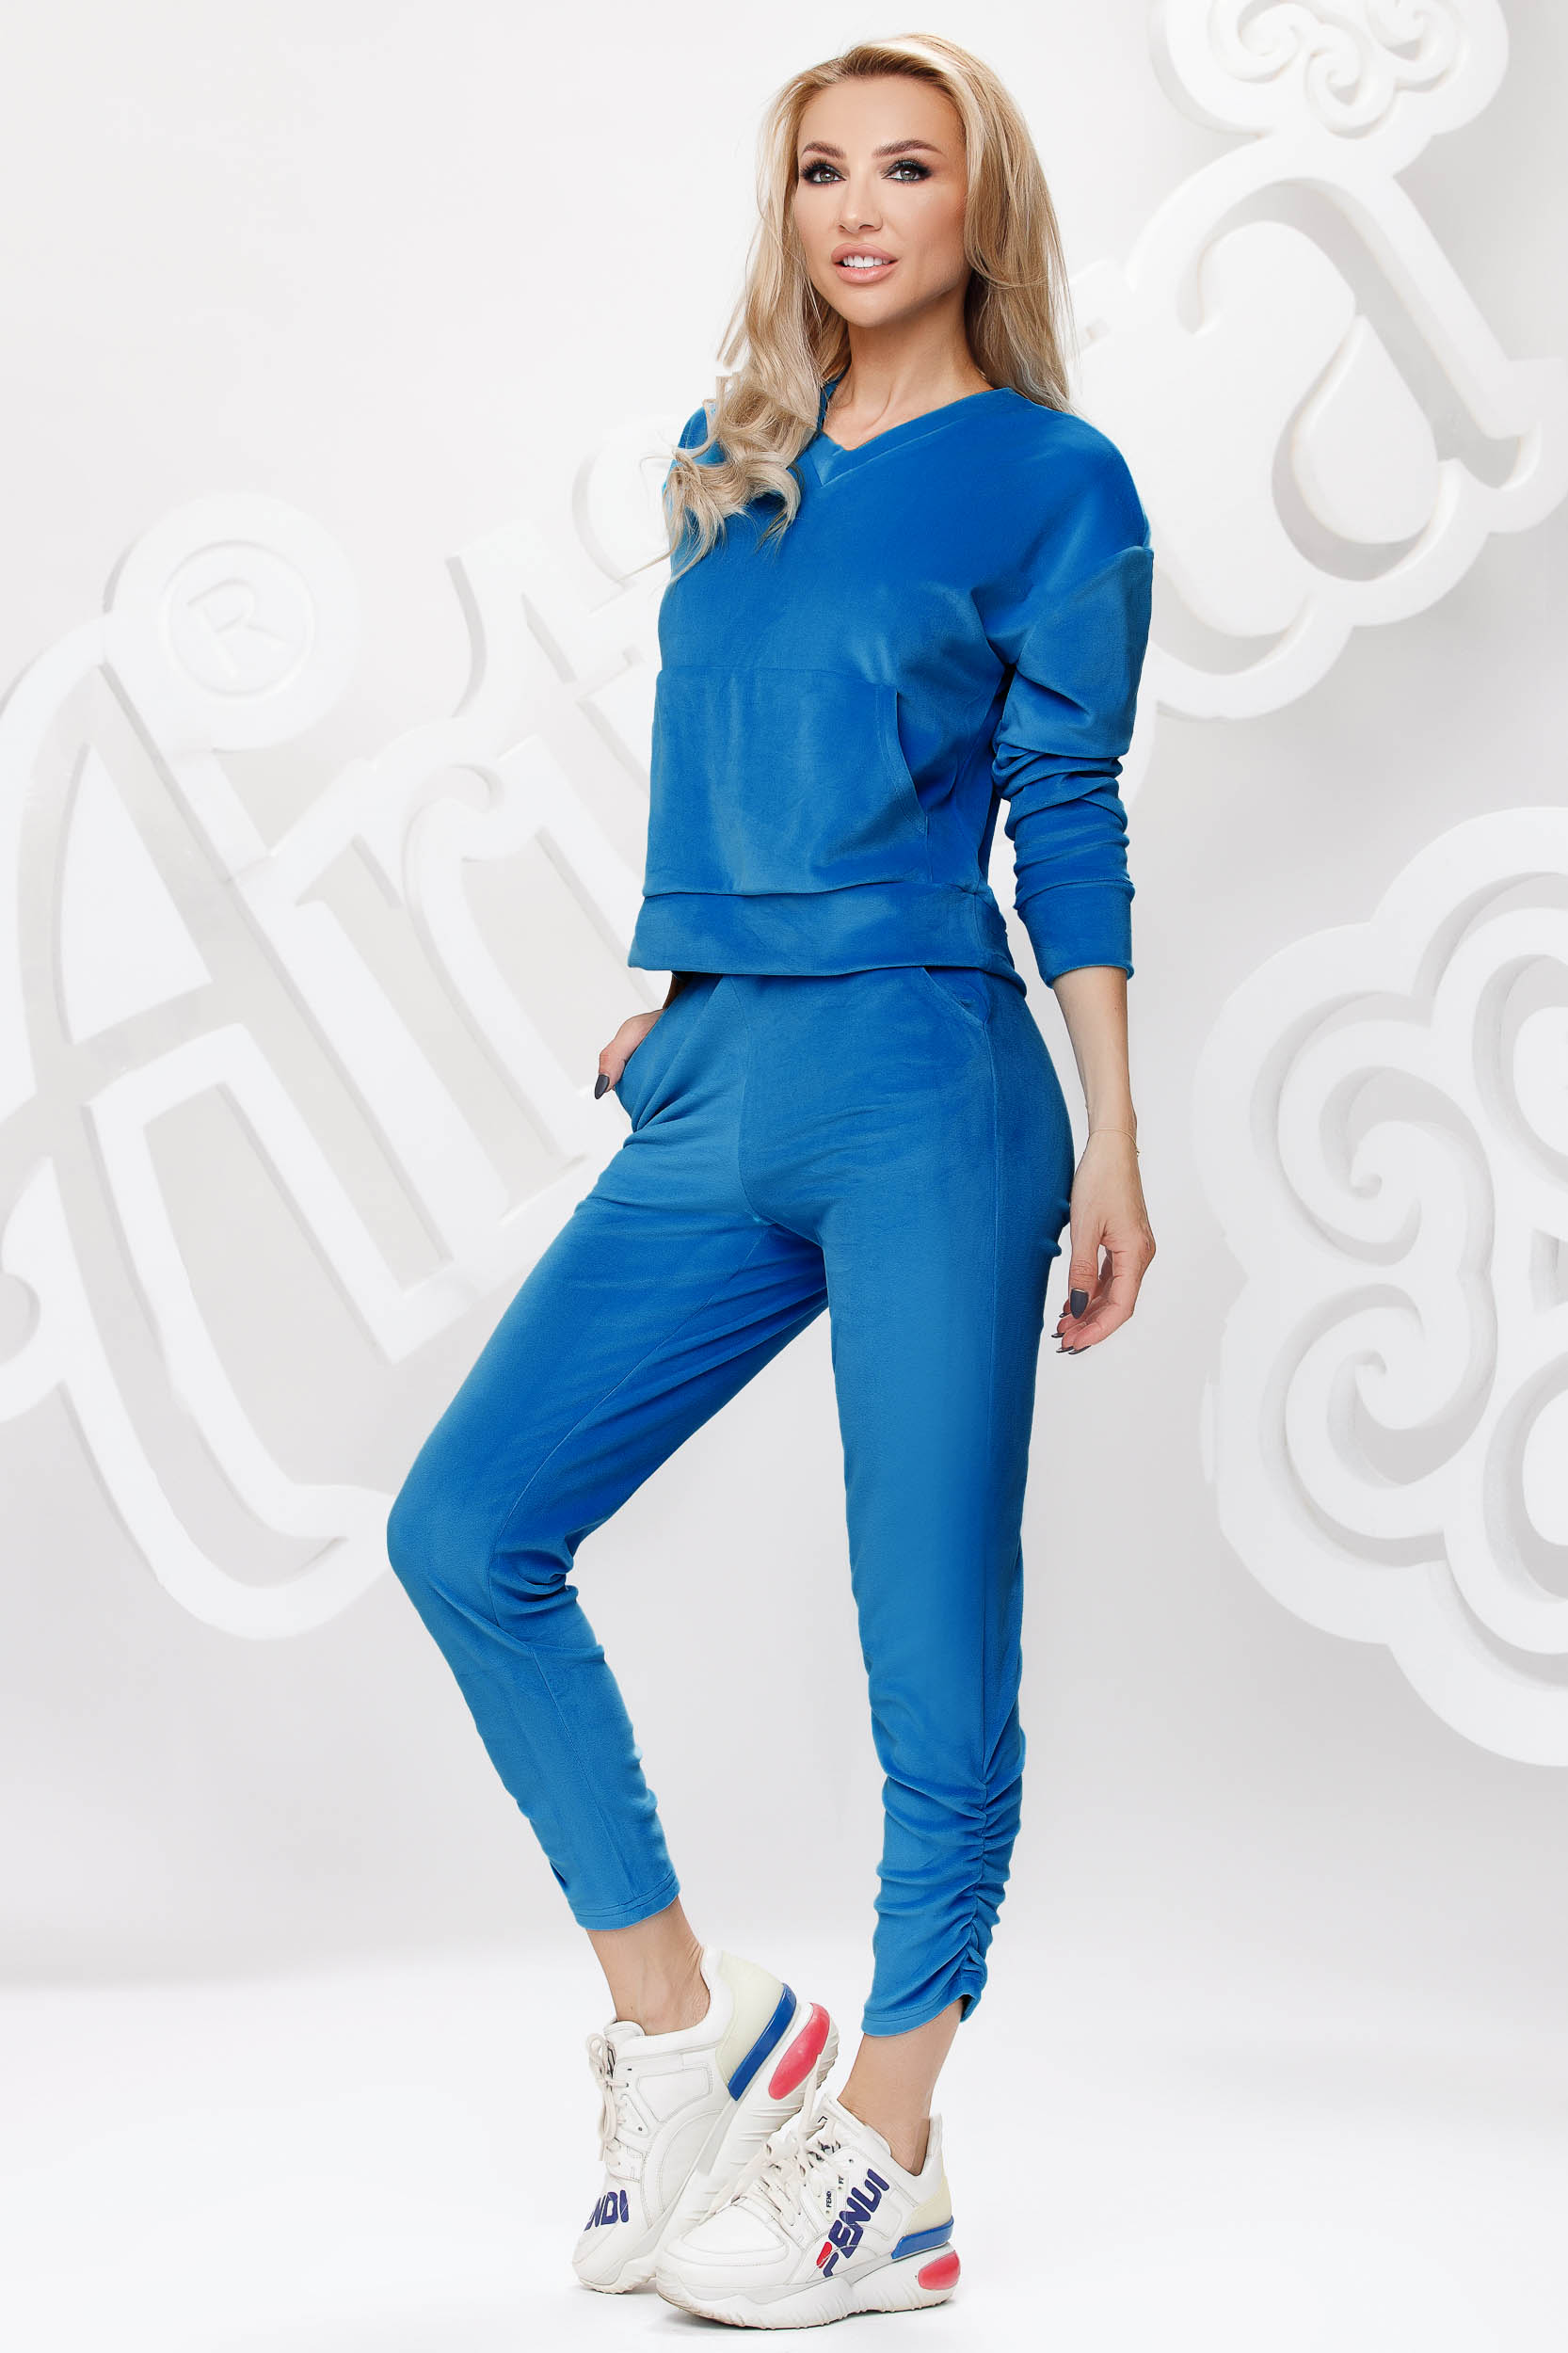 Blue sport 2 pieces velvet loose fit with front pockets